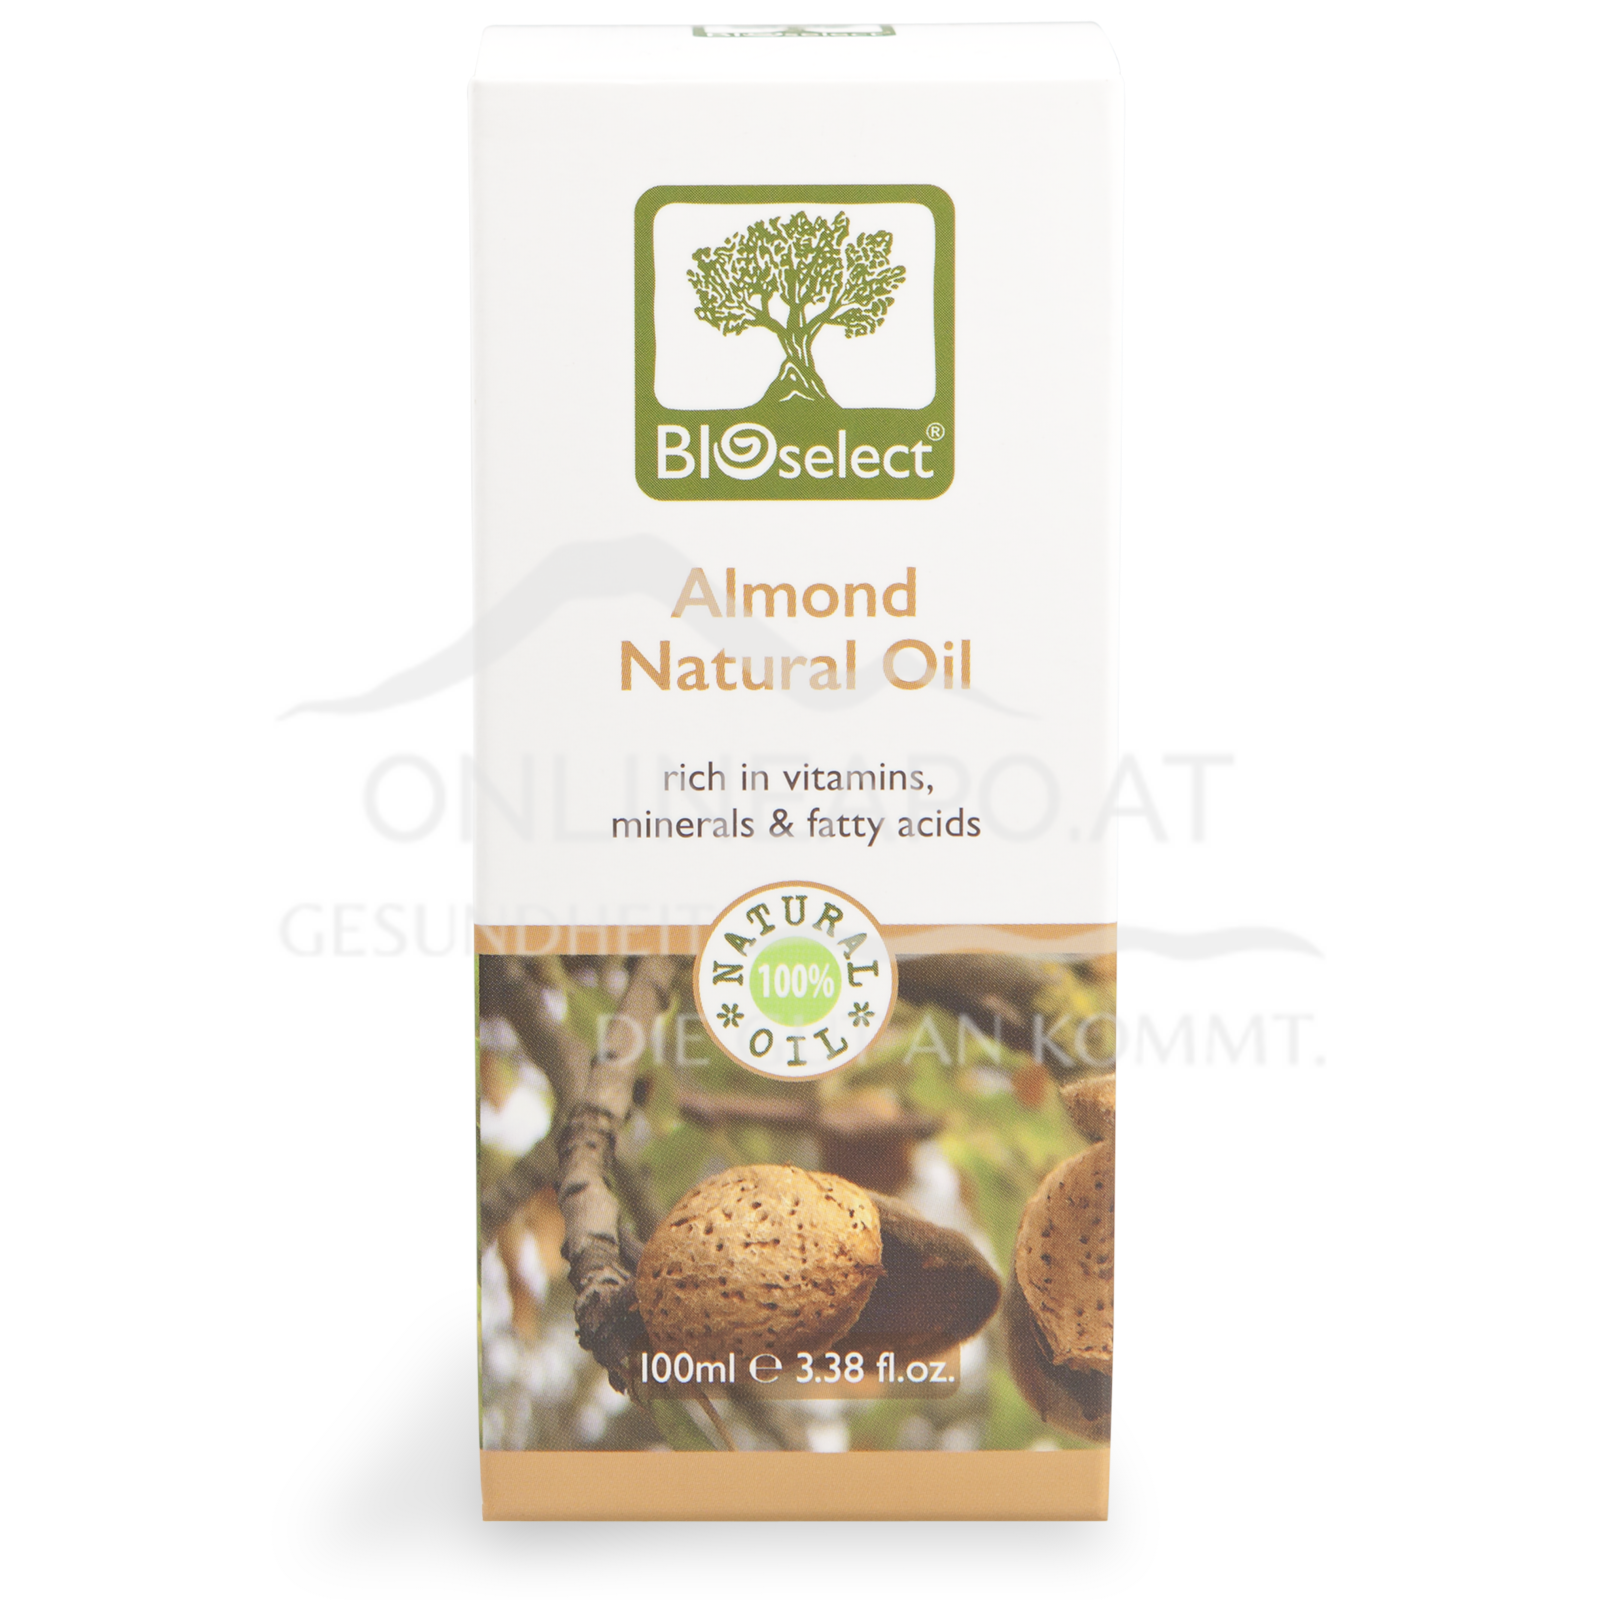 Bioselect Almond Natural Oil